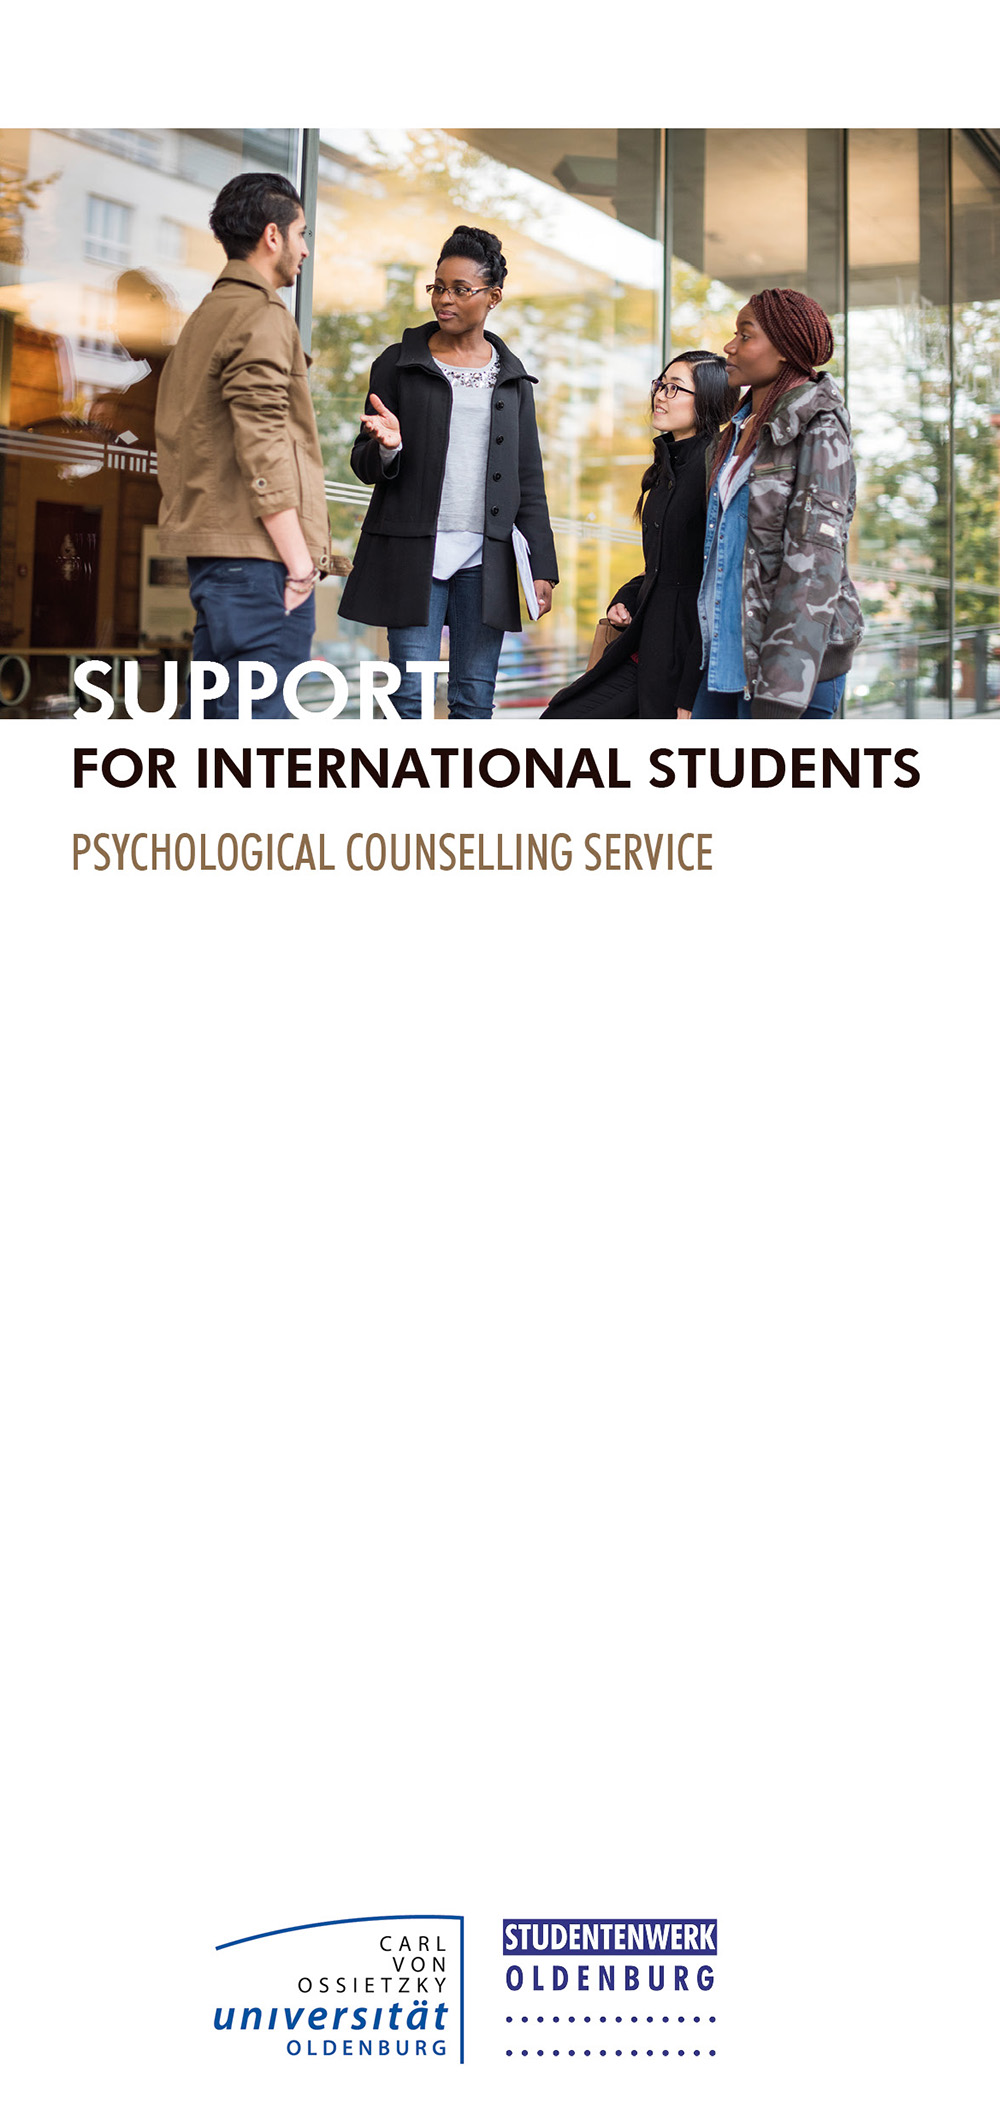 Support for international students: Psychological Counselling Service